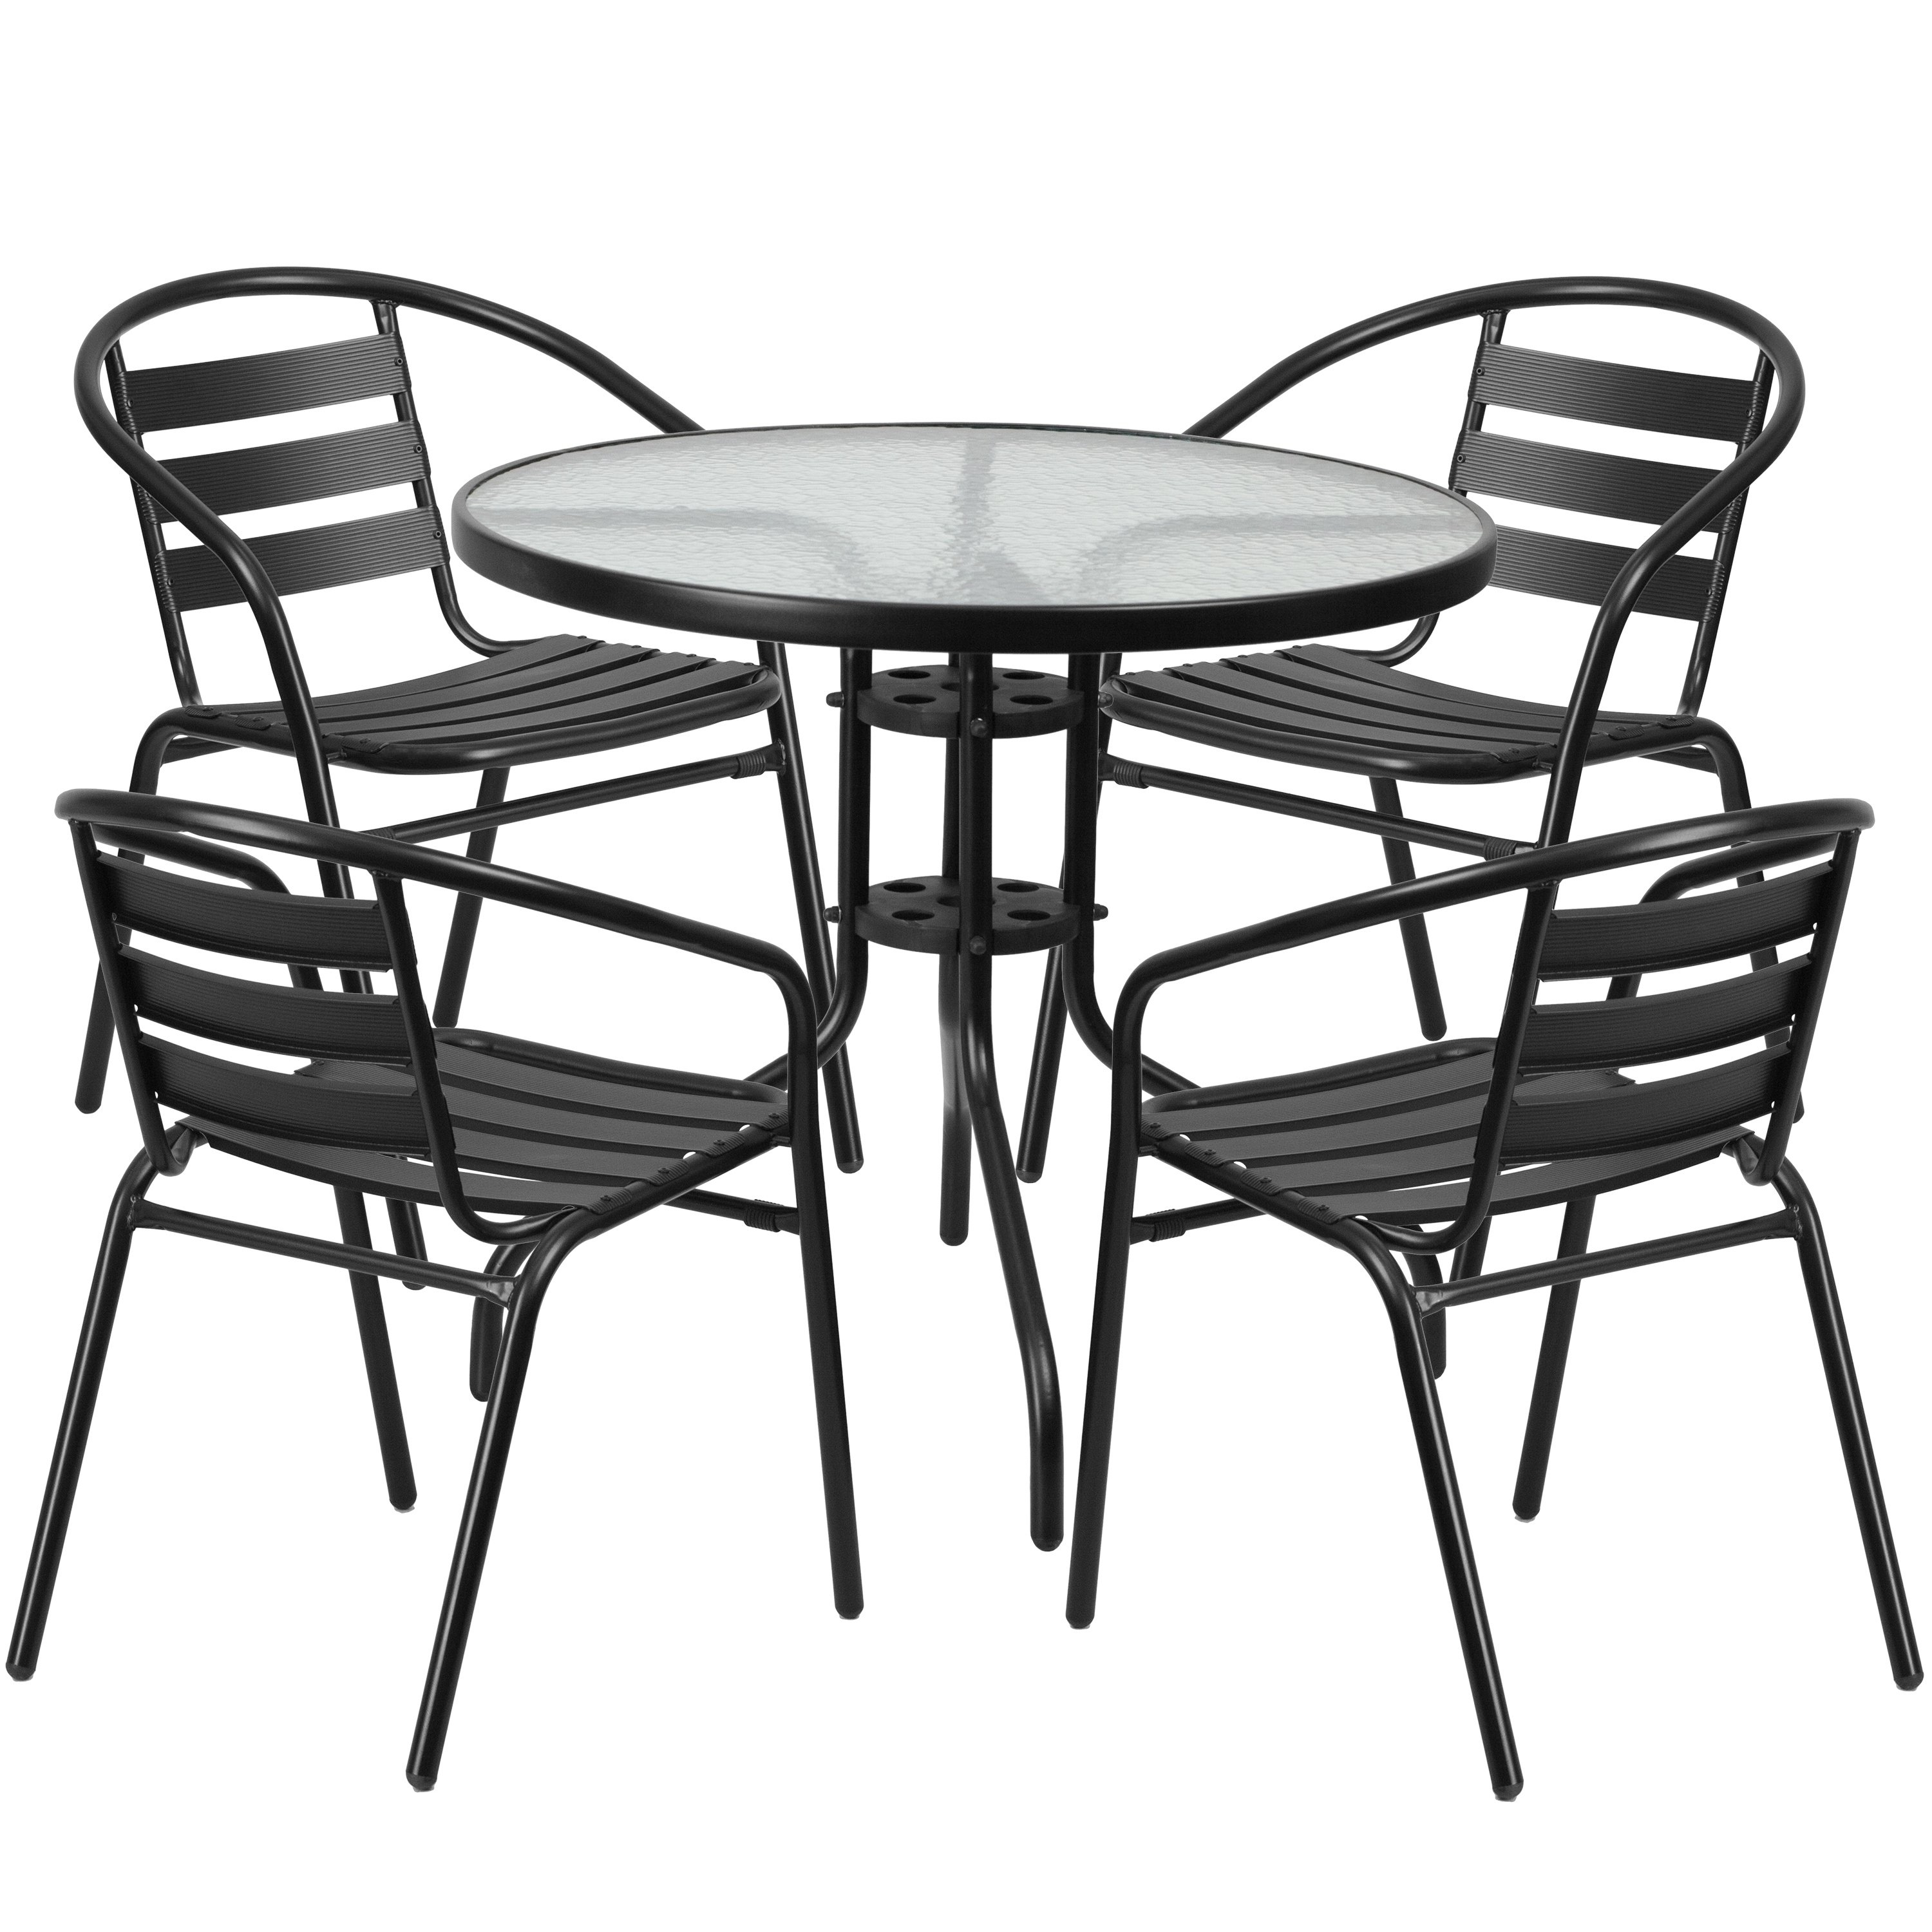 Trendy Candice Ii 7 Piece Extension Rectangular Dining Sets With Slat Back Side Chairs For Shop (View 23 of 25)